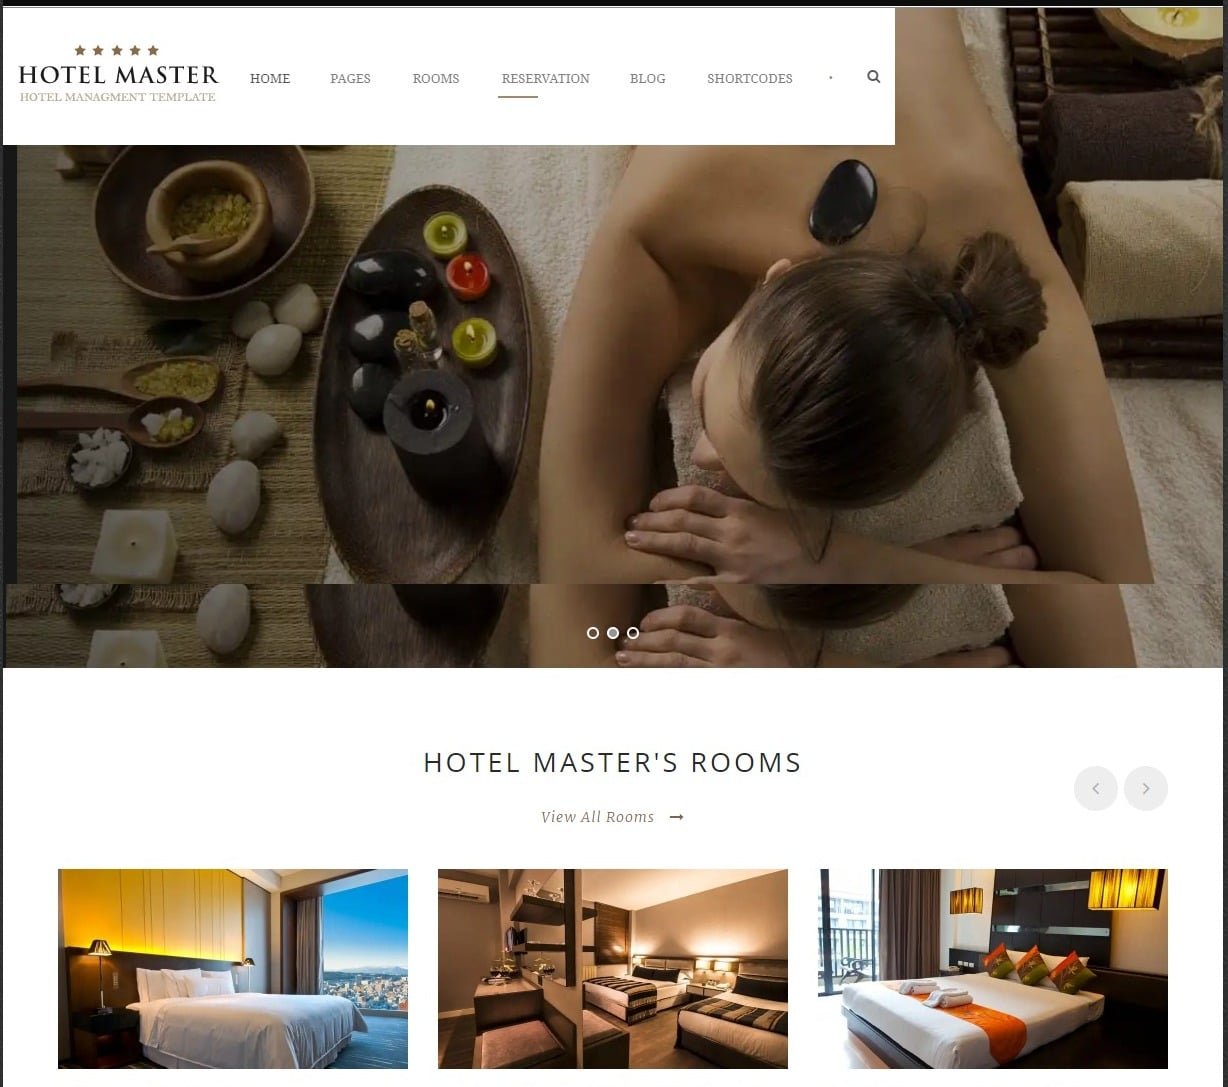 hotel-master-hotel-website-template